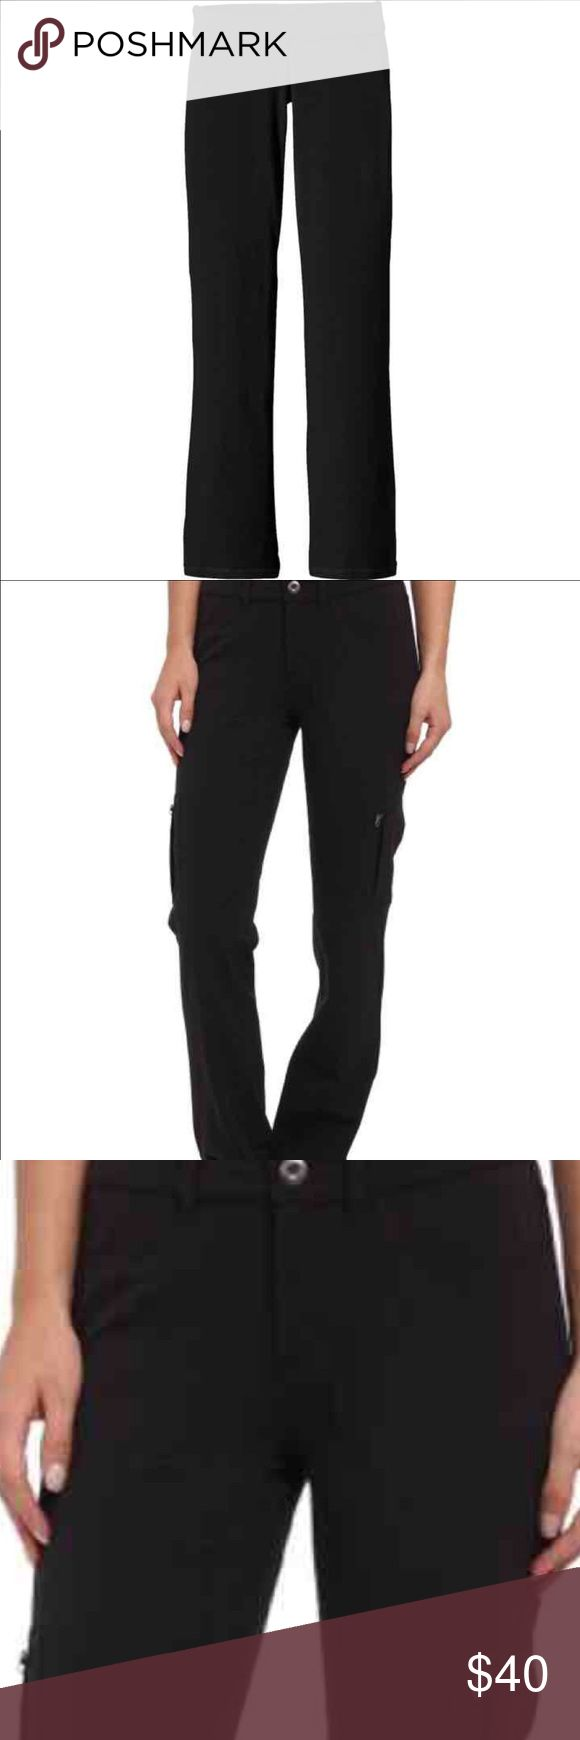 SALE!!! Black Patagonia pants In perfect condition! Women's black Patagonia pants. Perfect for every day use or for spring/summer camping/hiking/climbing. Fabric drys  quickly & Patagonia is an amazing brand. Bought from REi for $86. I need a smaller size now. Inseam is 28 inches 💗 Patagonia Pants